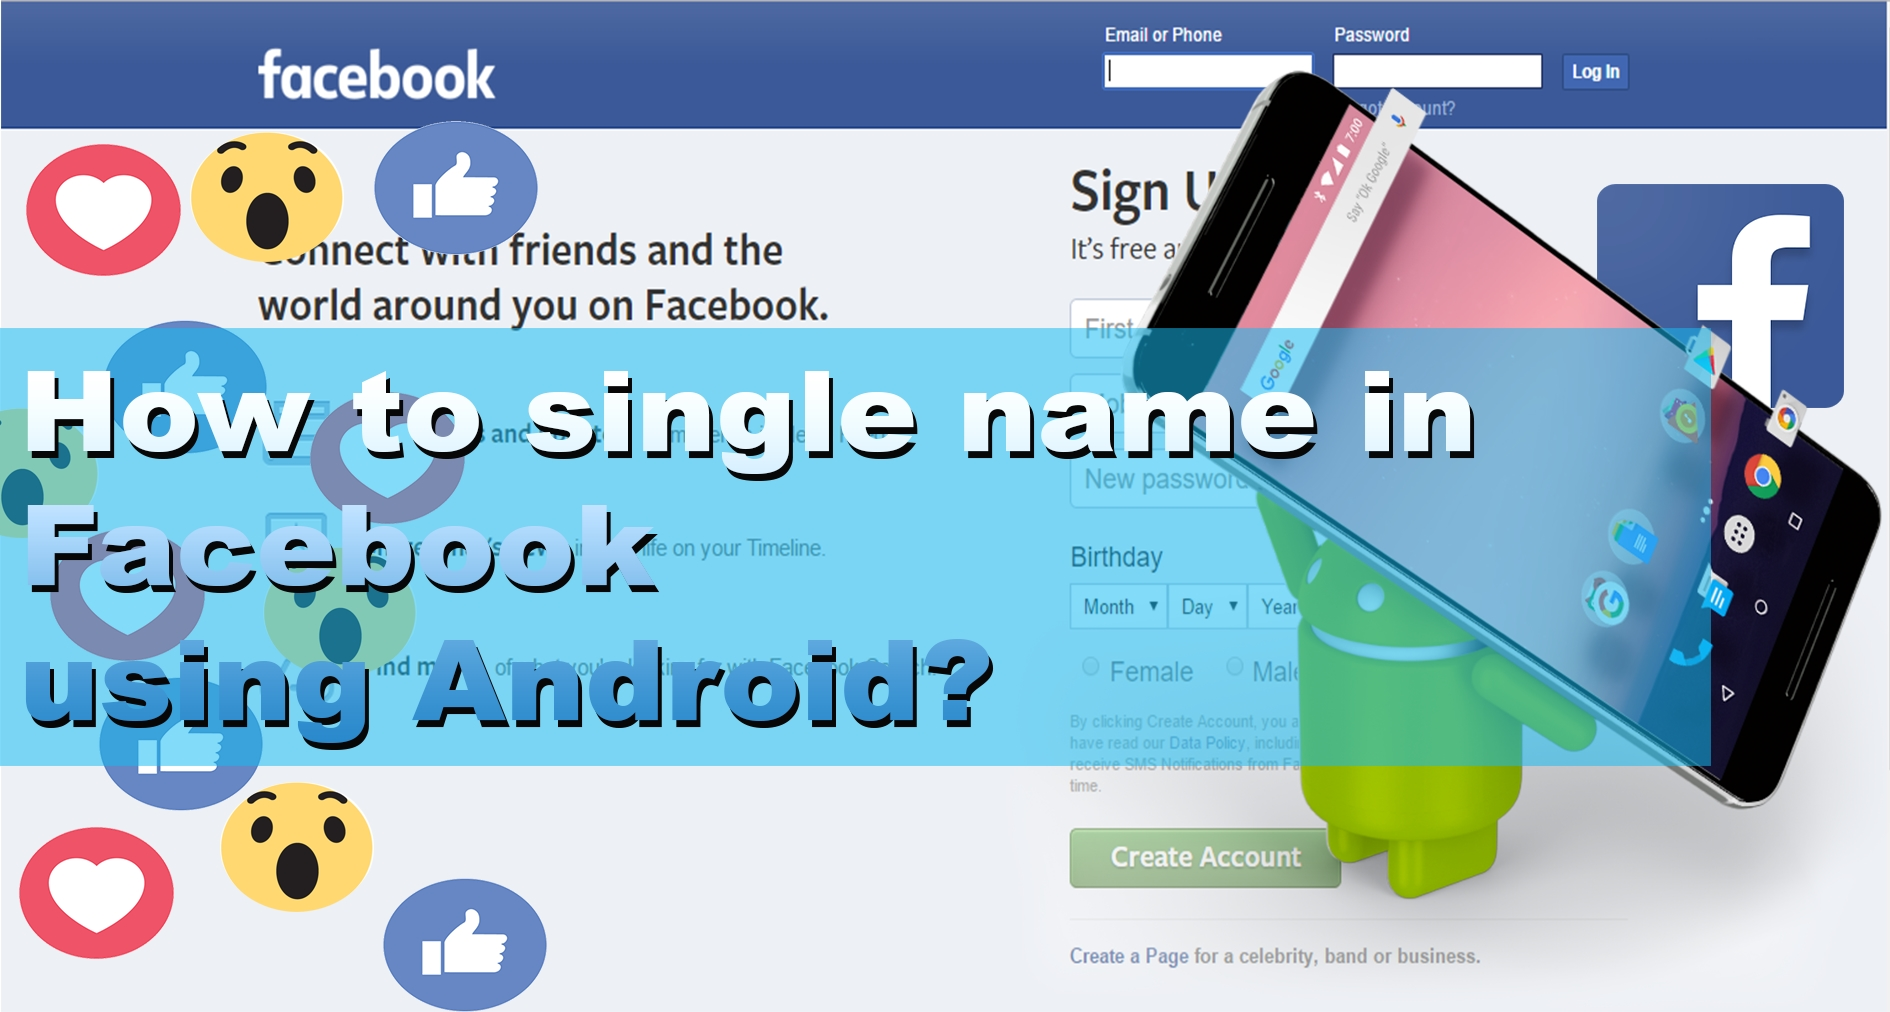 How to Single name in Facebook using Android phones